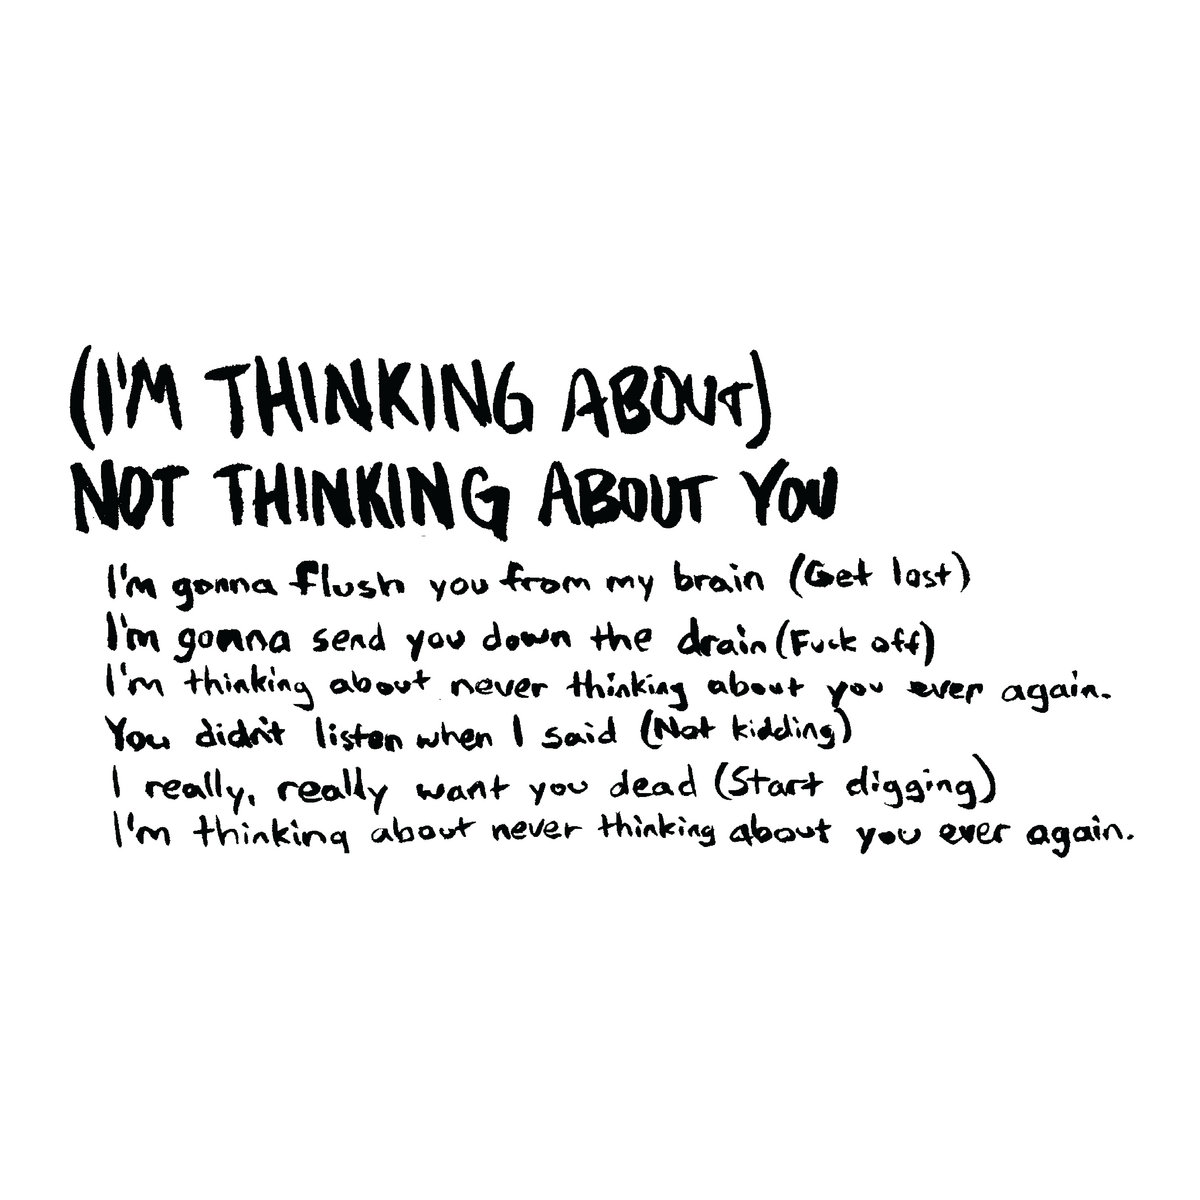 I'm Thinking About) Not Thinking About You | Bookmobile!